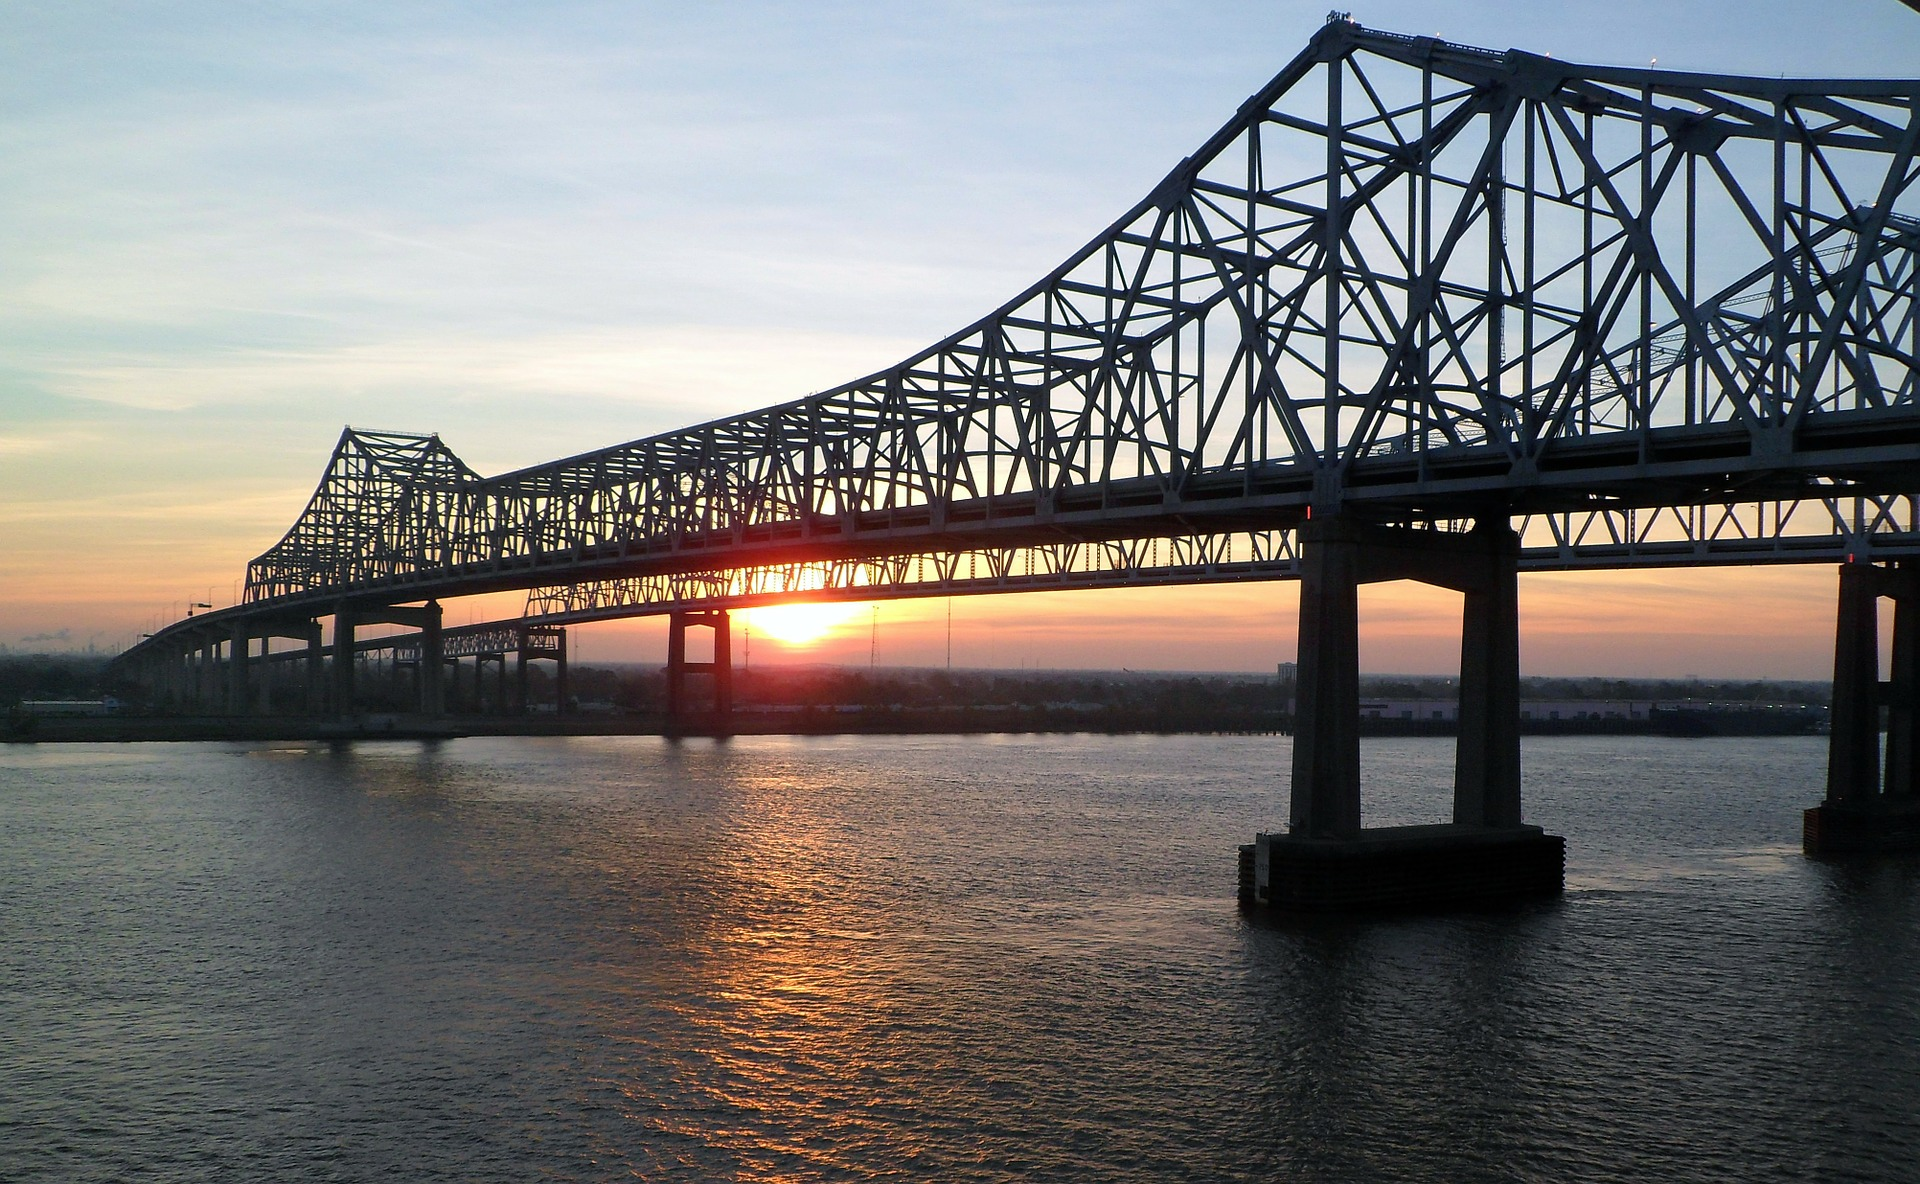 The Crescent City Connection, formerly the Greater New Orleans Bridge, New Orleans